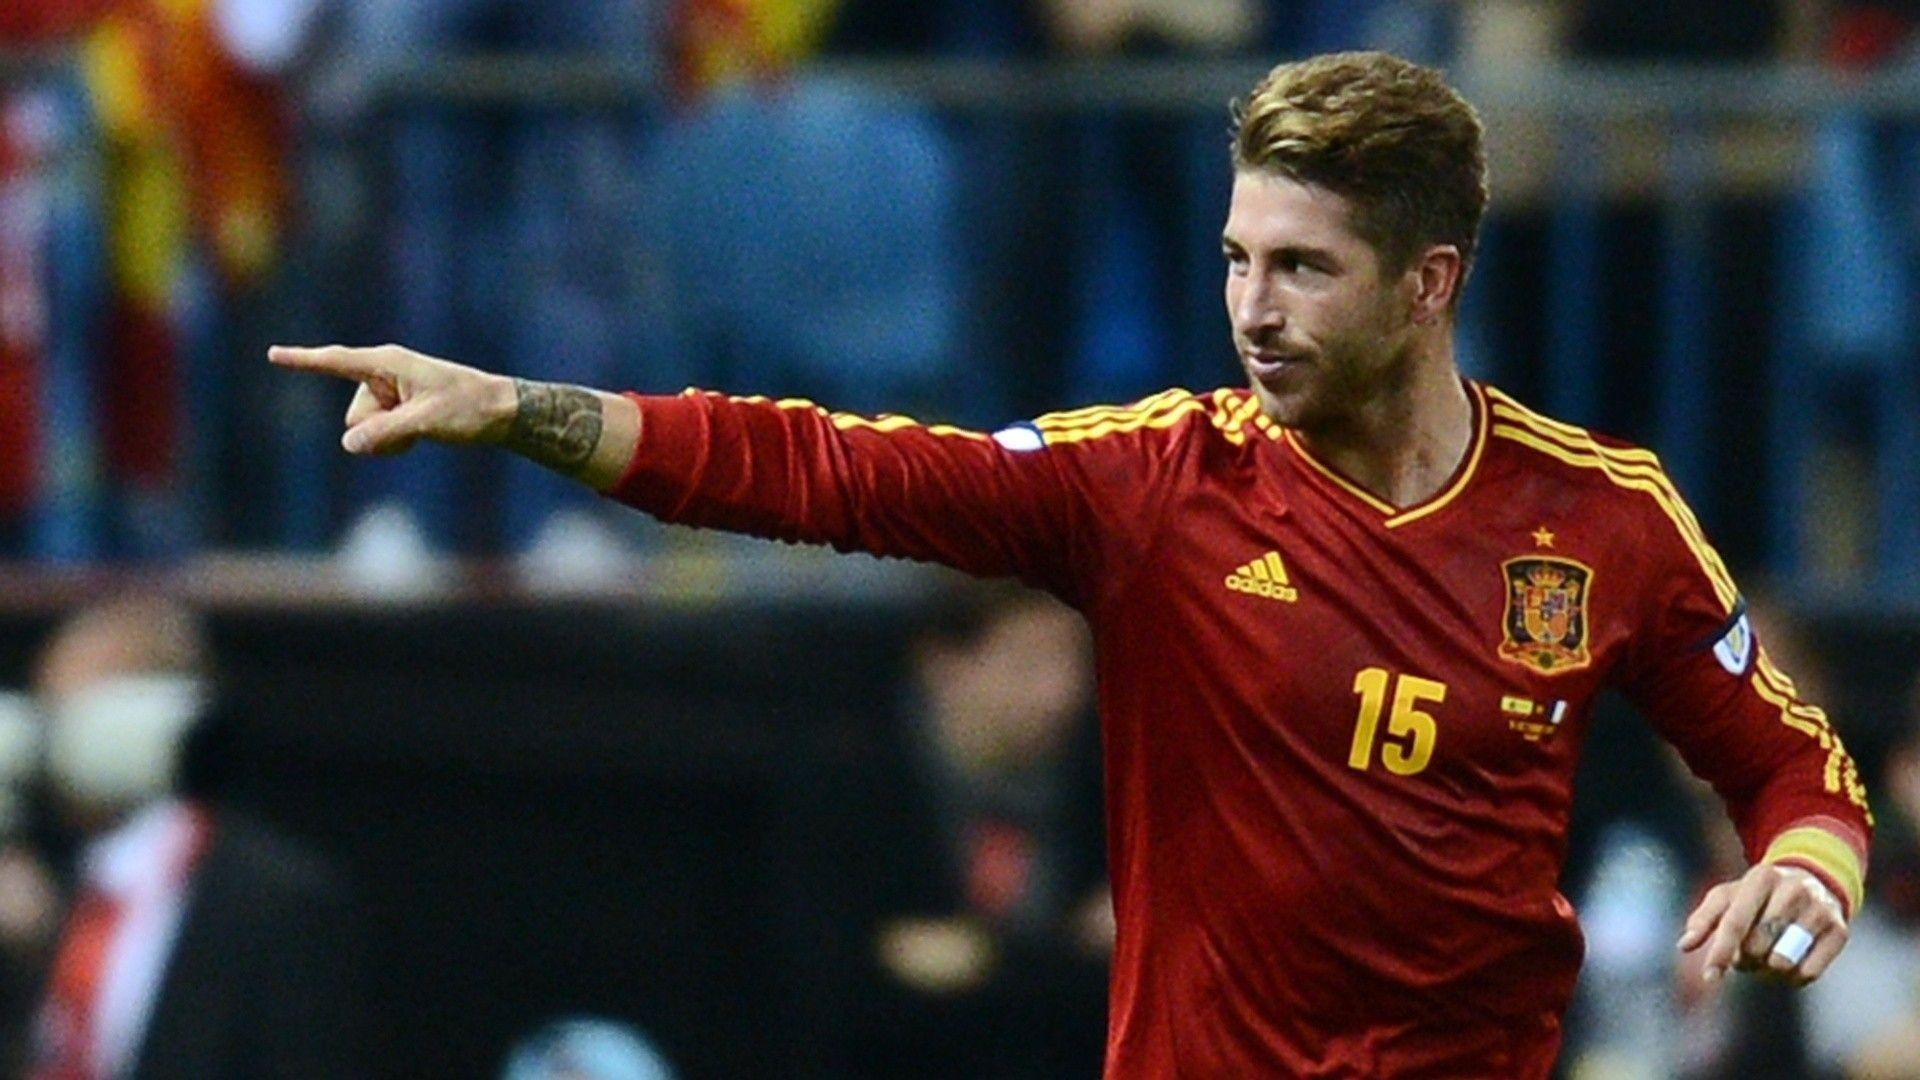 5f84d98a2 1920x1080 Sergio Ramos HD Wallpapers - HD Wallpapers Backgrounds of Your  Choice